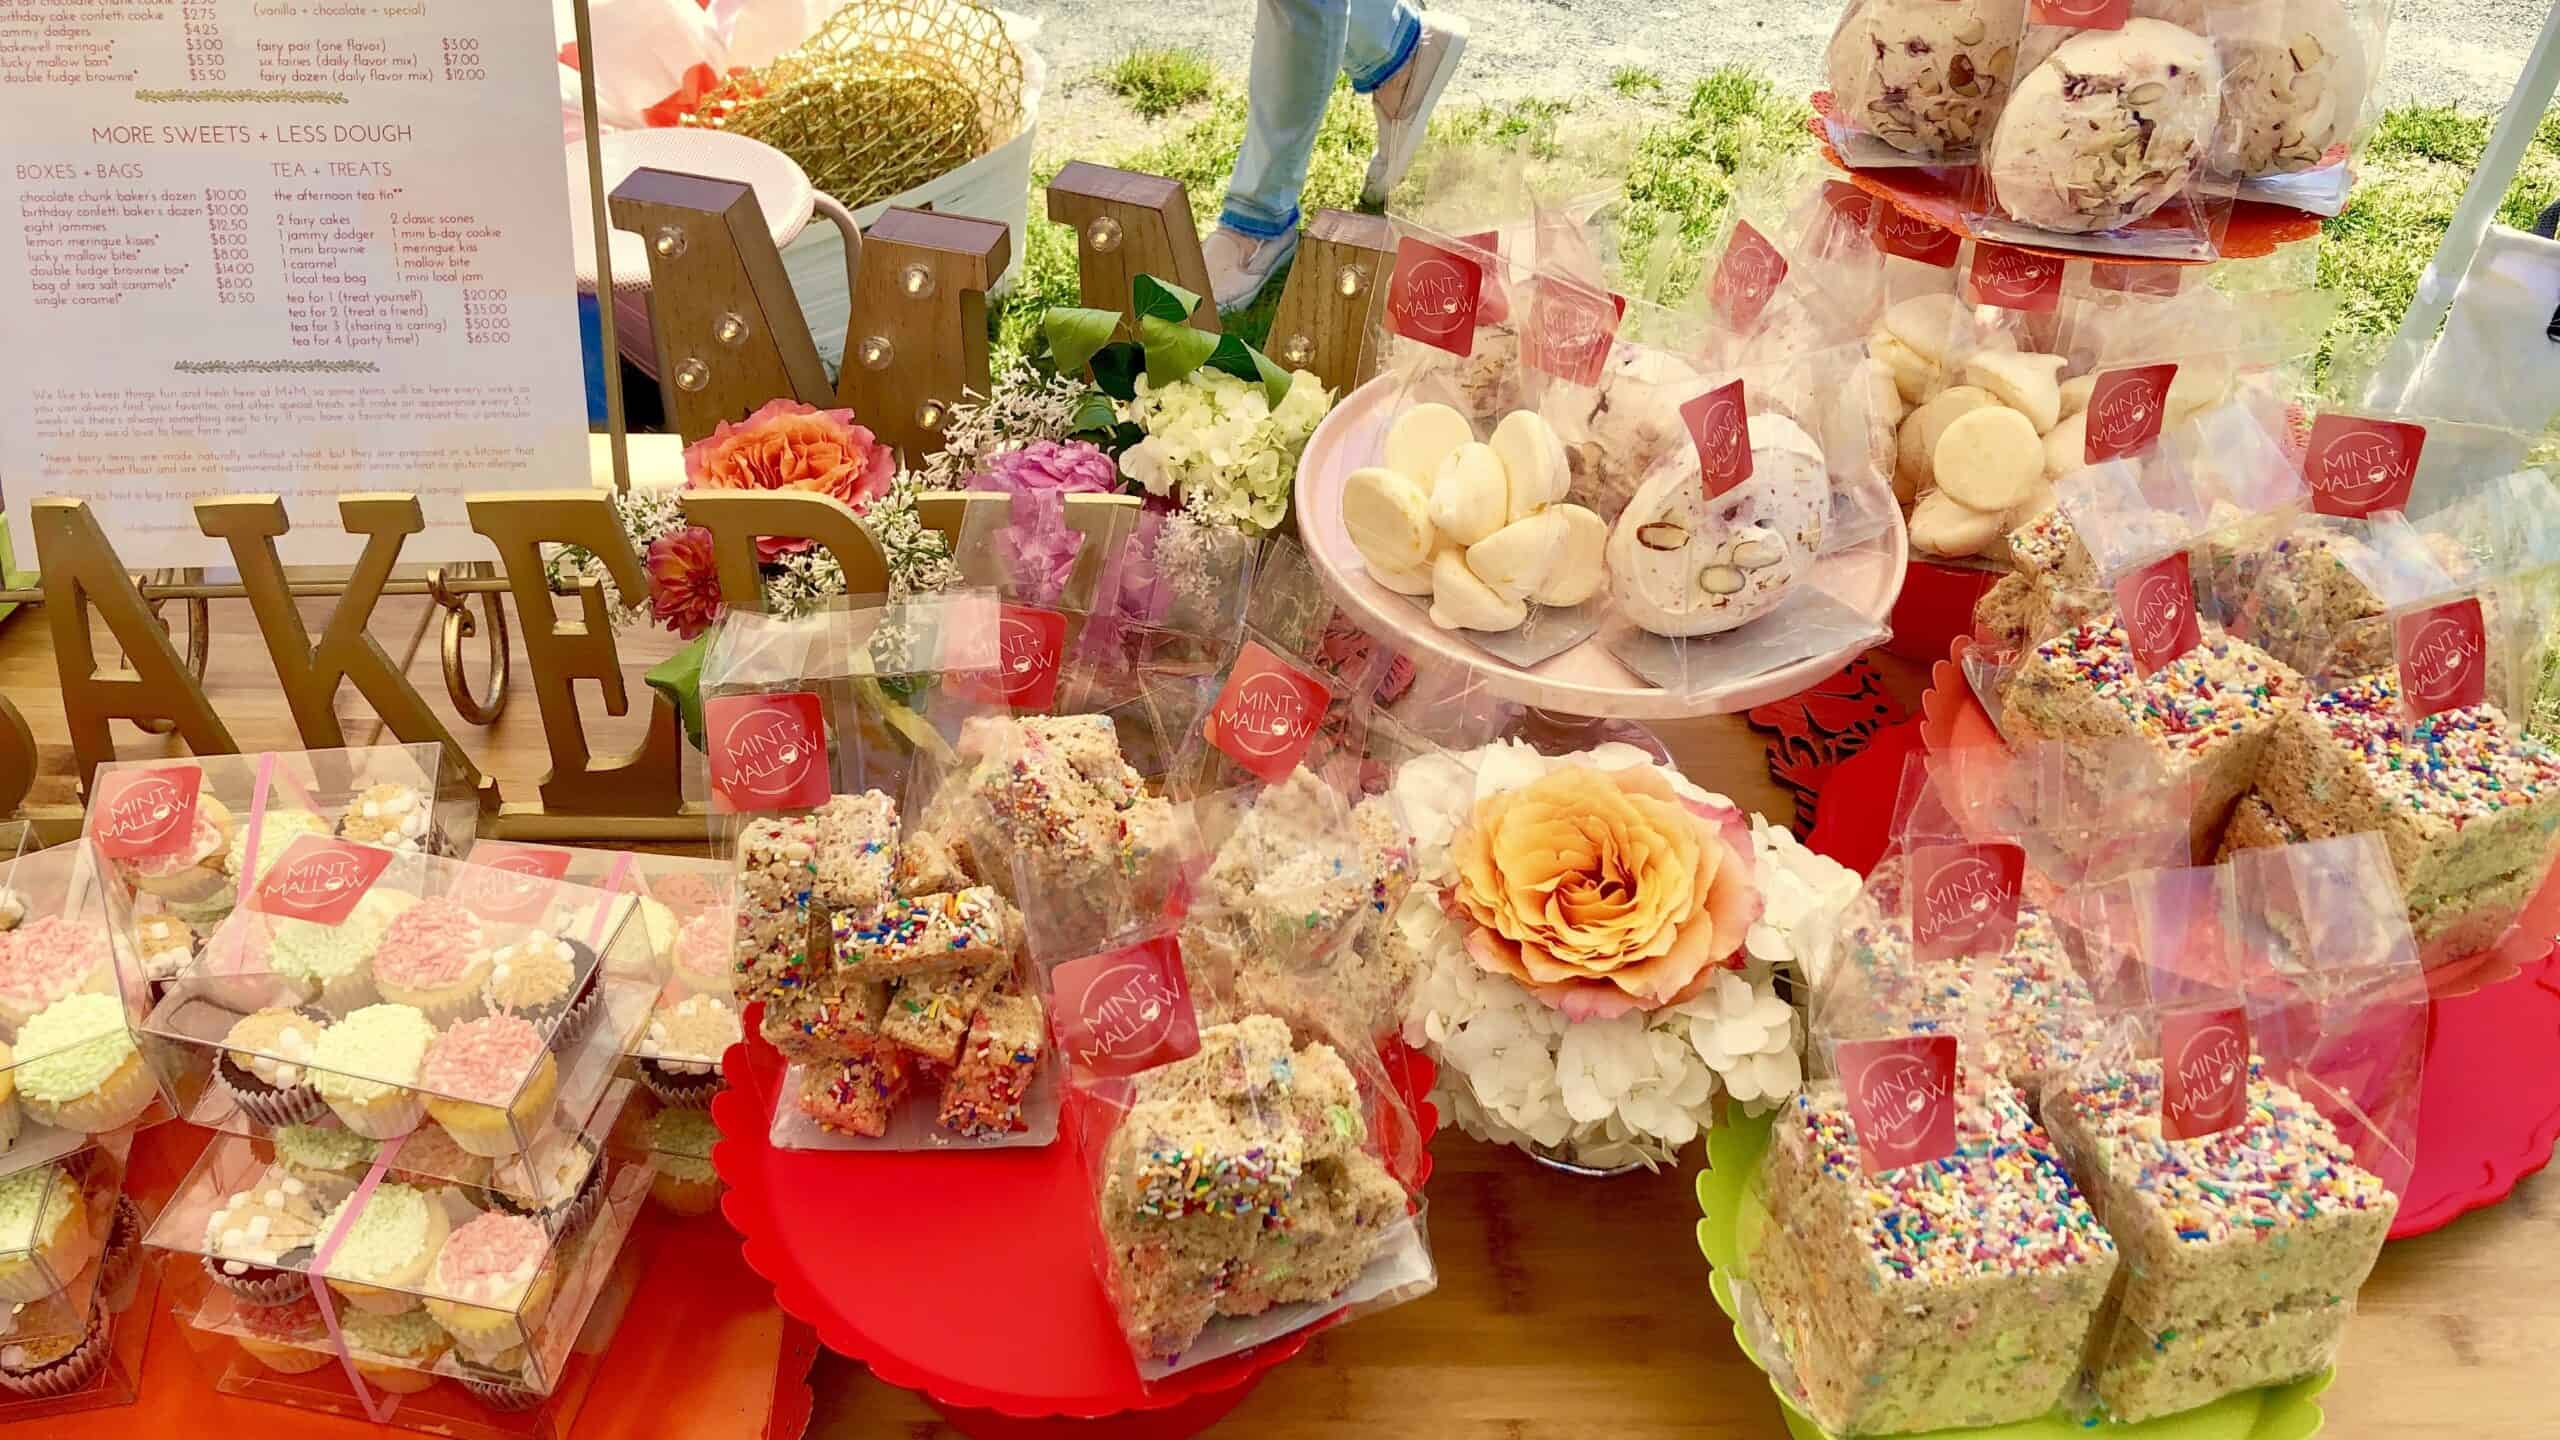 bags of meringues, cupcakes, and rice krispies on a table with pink trays and flowers in the background